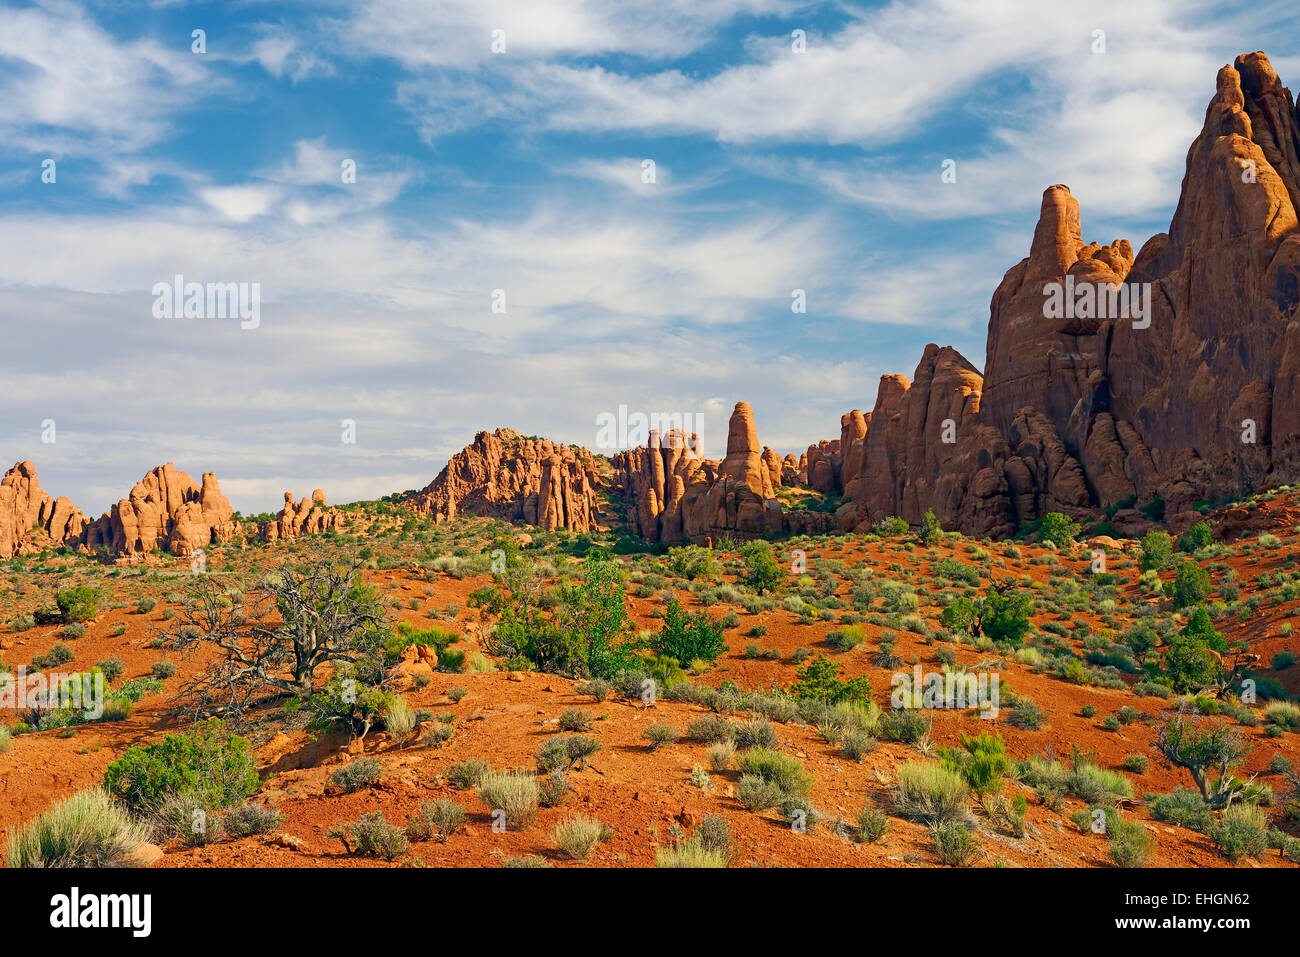 Red rock formations in Arches National Park, Utah, United States. - Stock Image